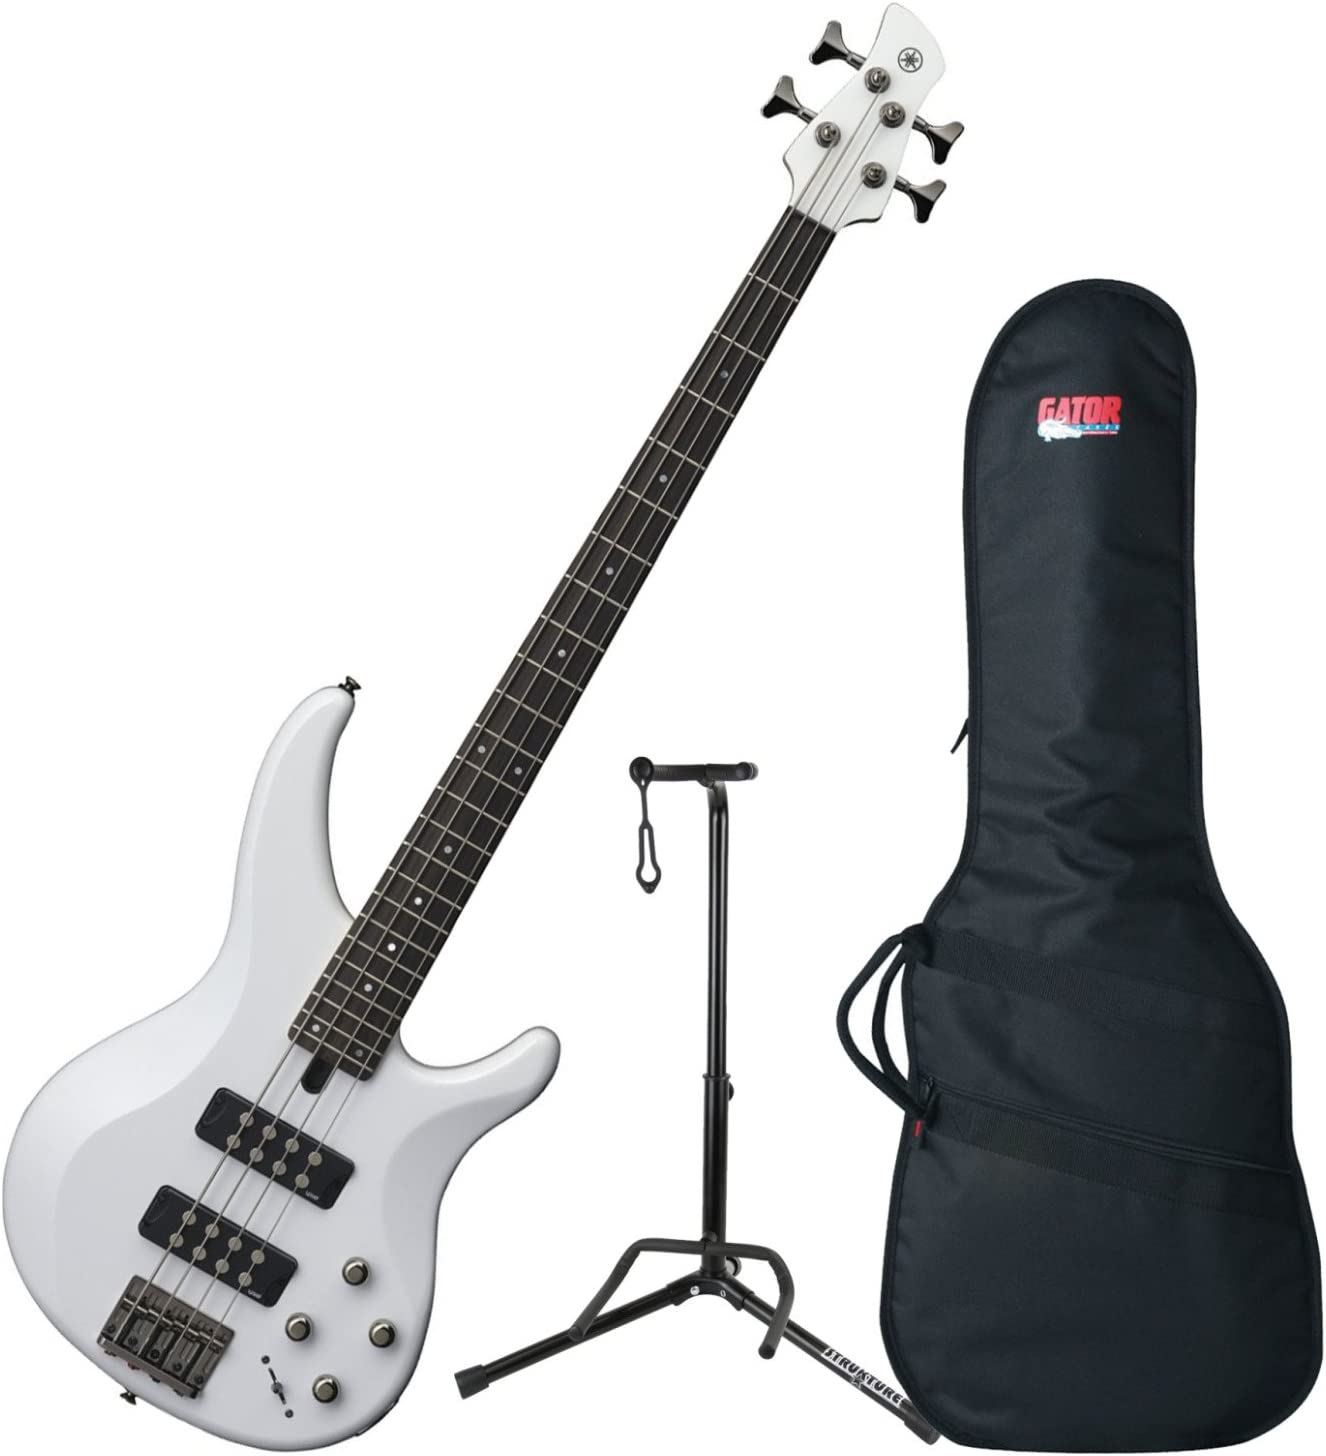 Yamaha TRBX304 WH TRBX-304 White 4 String Bass Guitar w/Gig Bag and Stand 71d6t33JFbLSL1500_